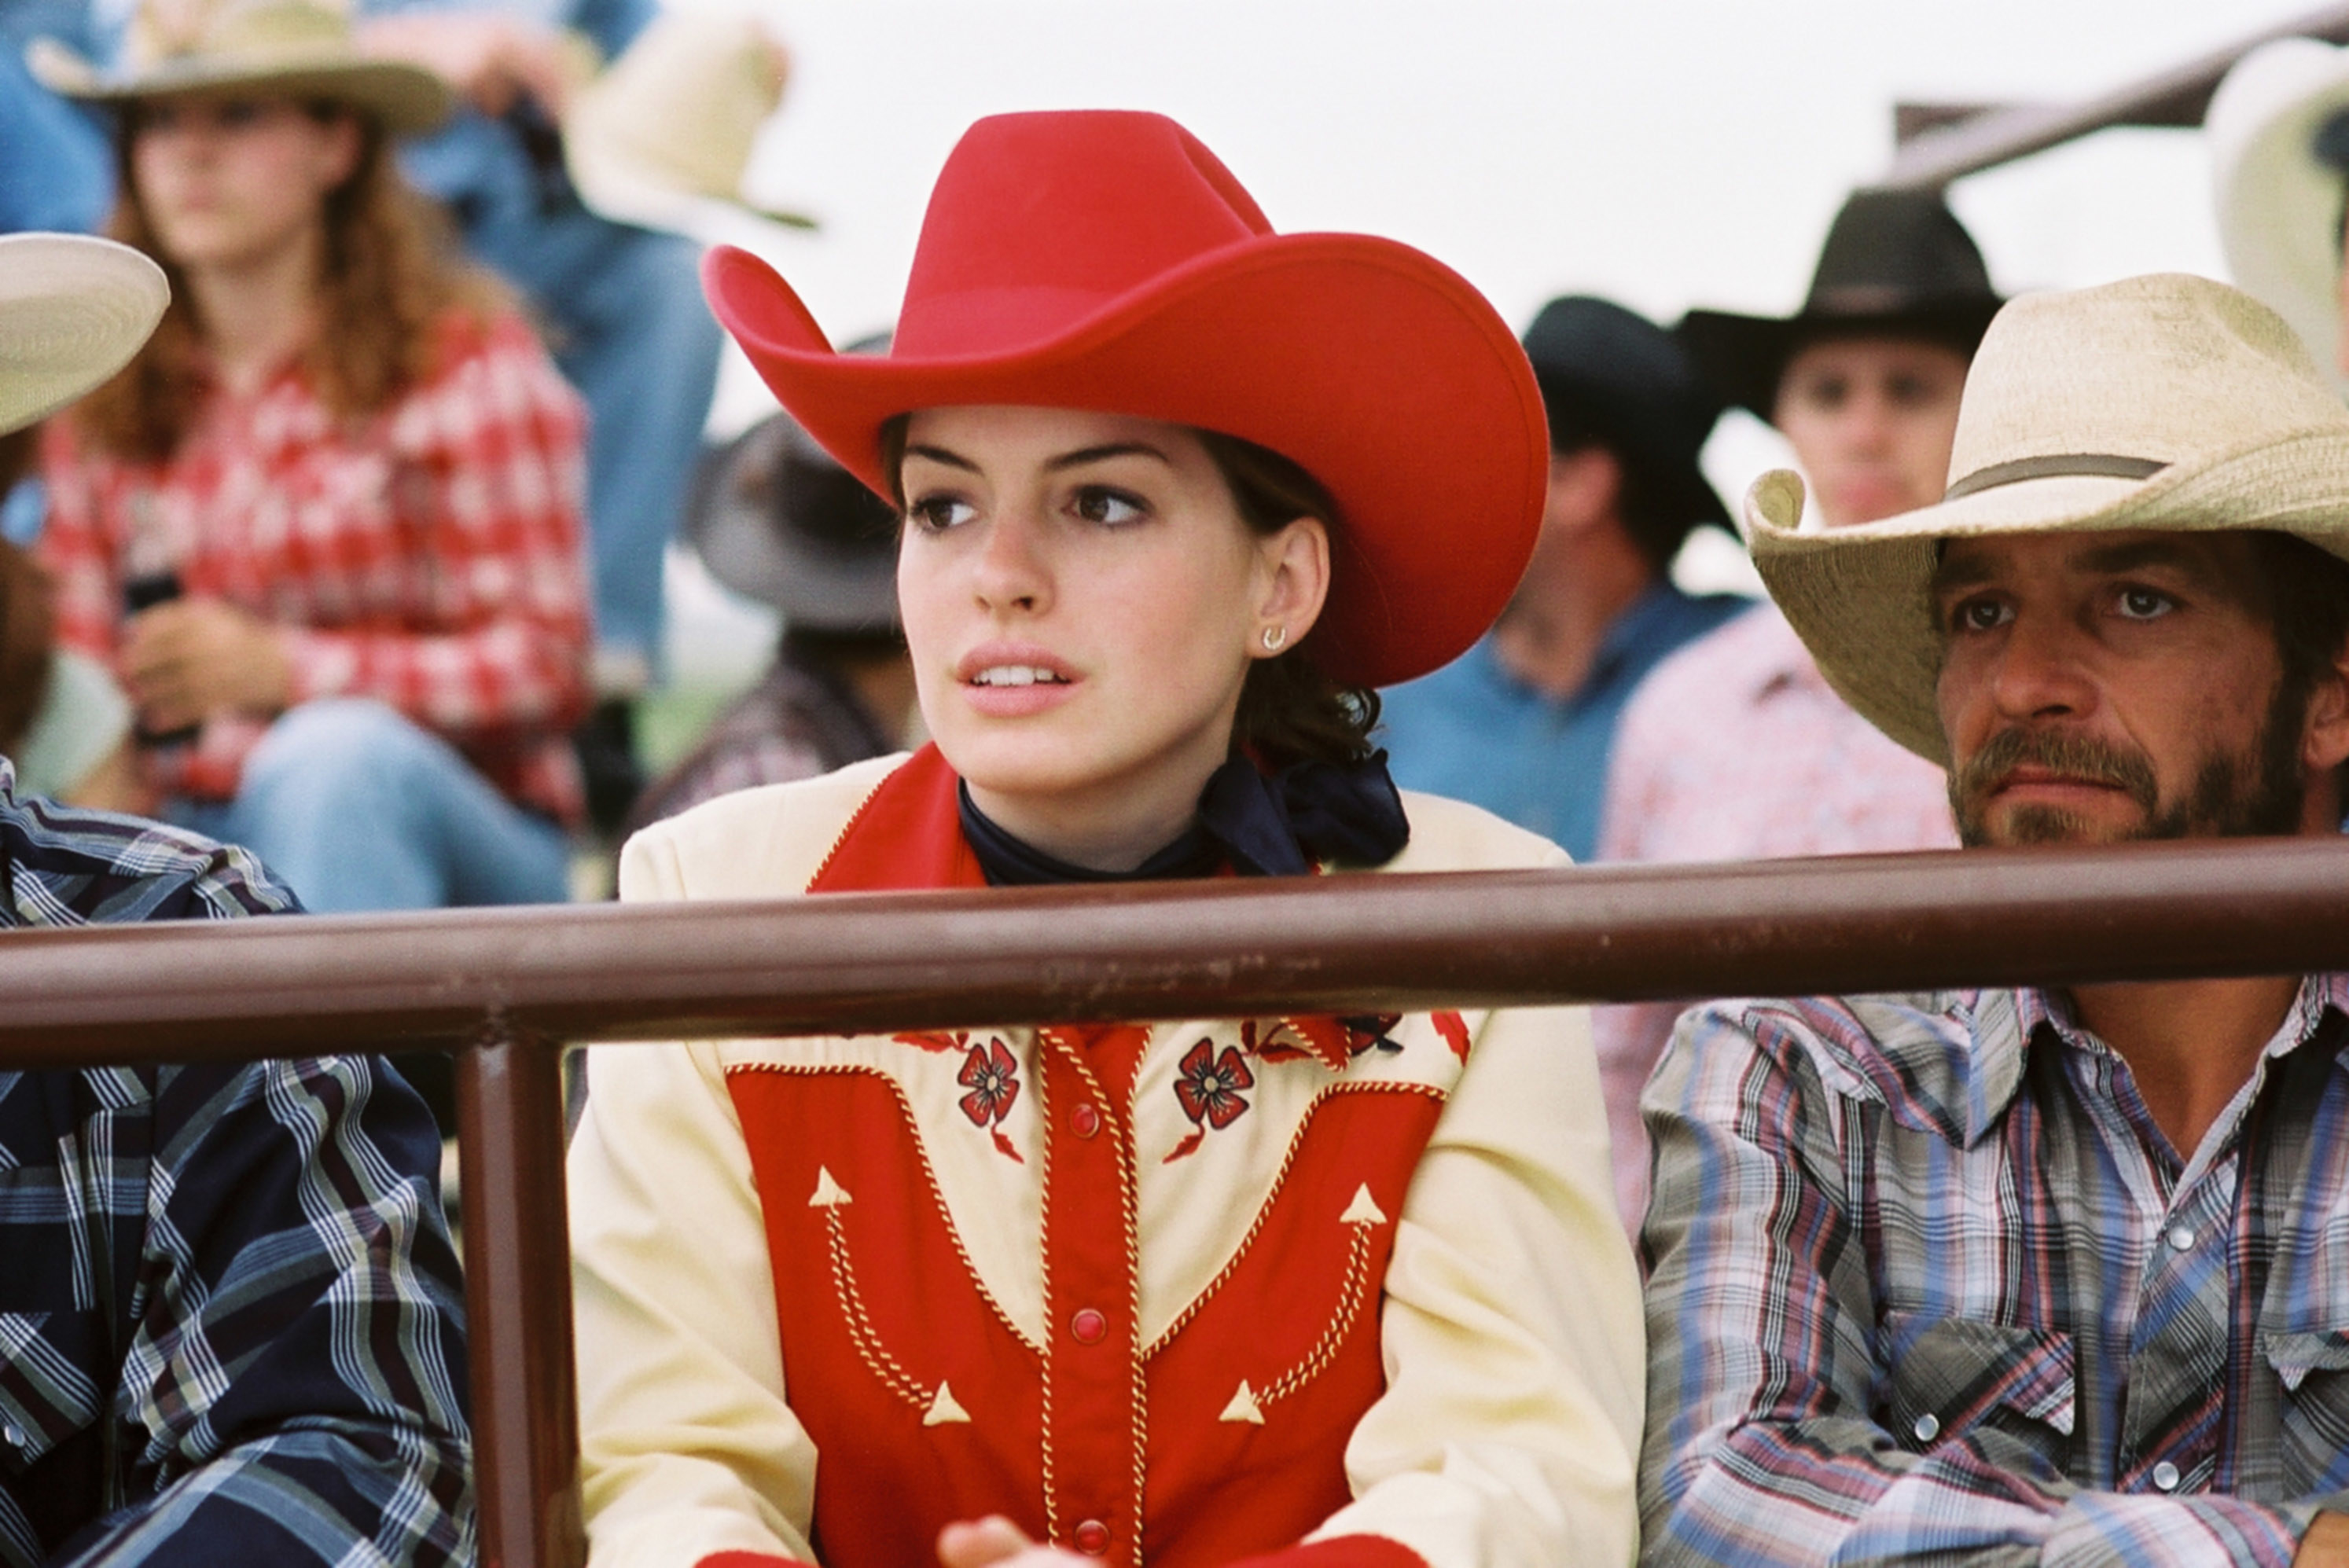 Anne Hathaway in a rodeo outfit in the movie